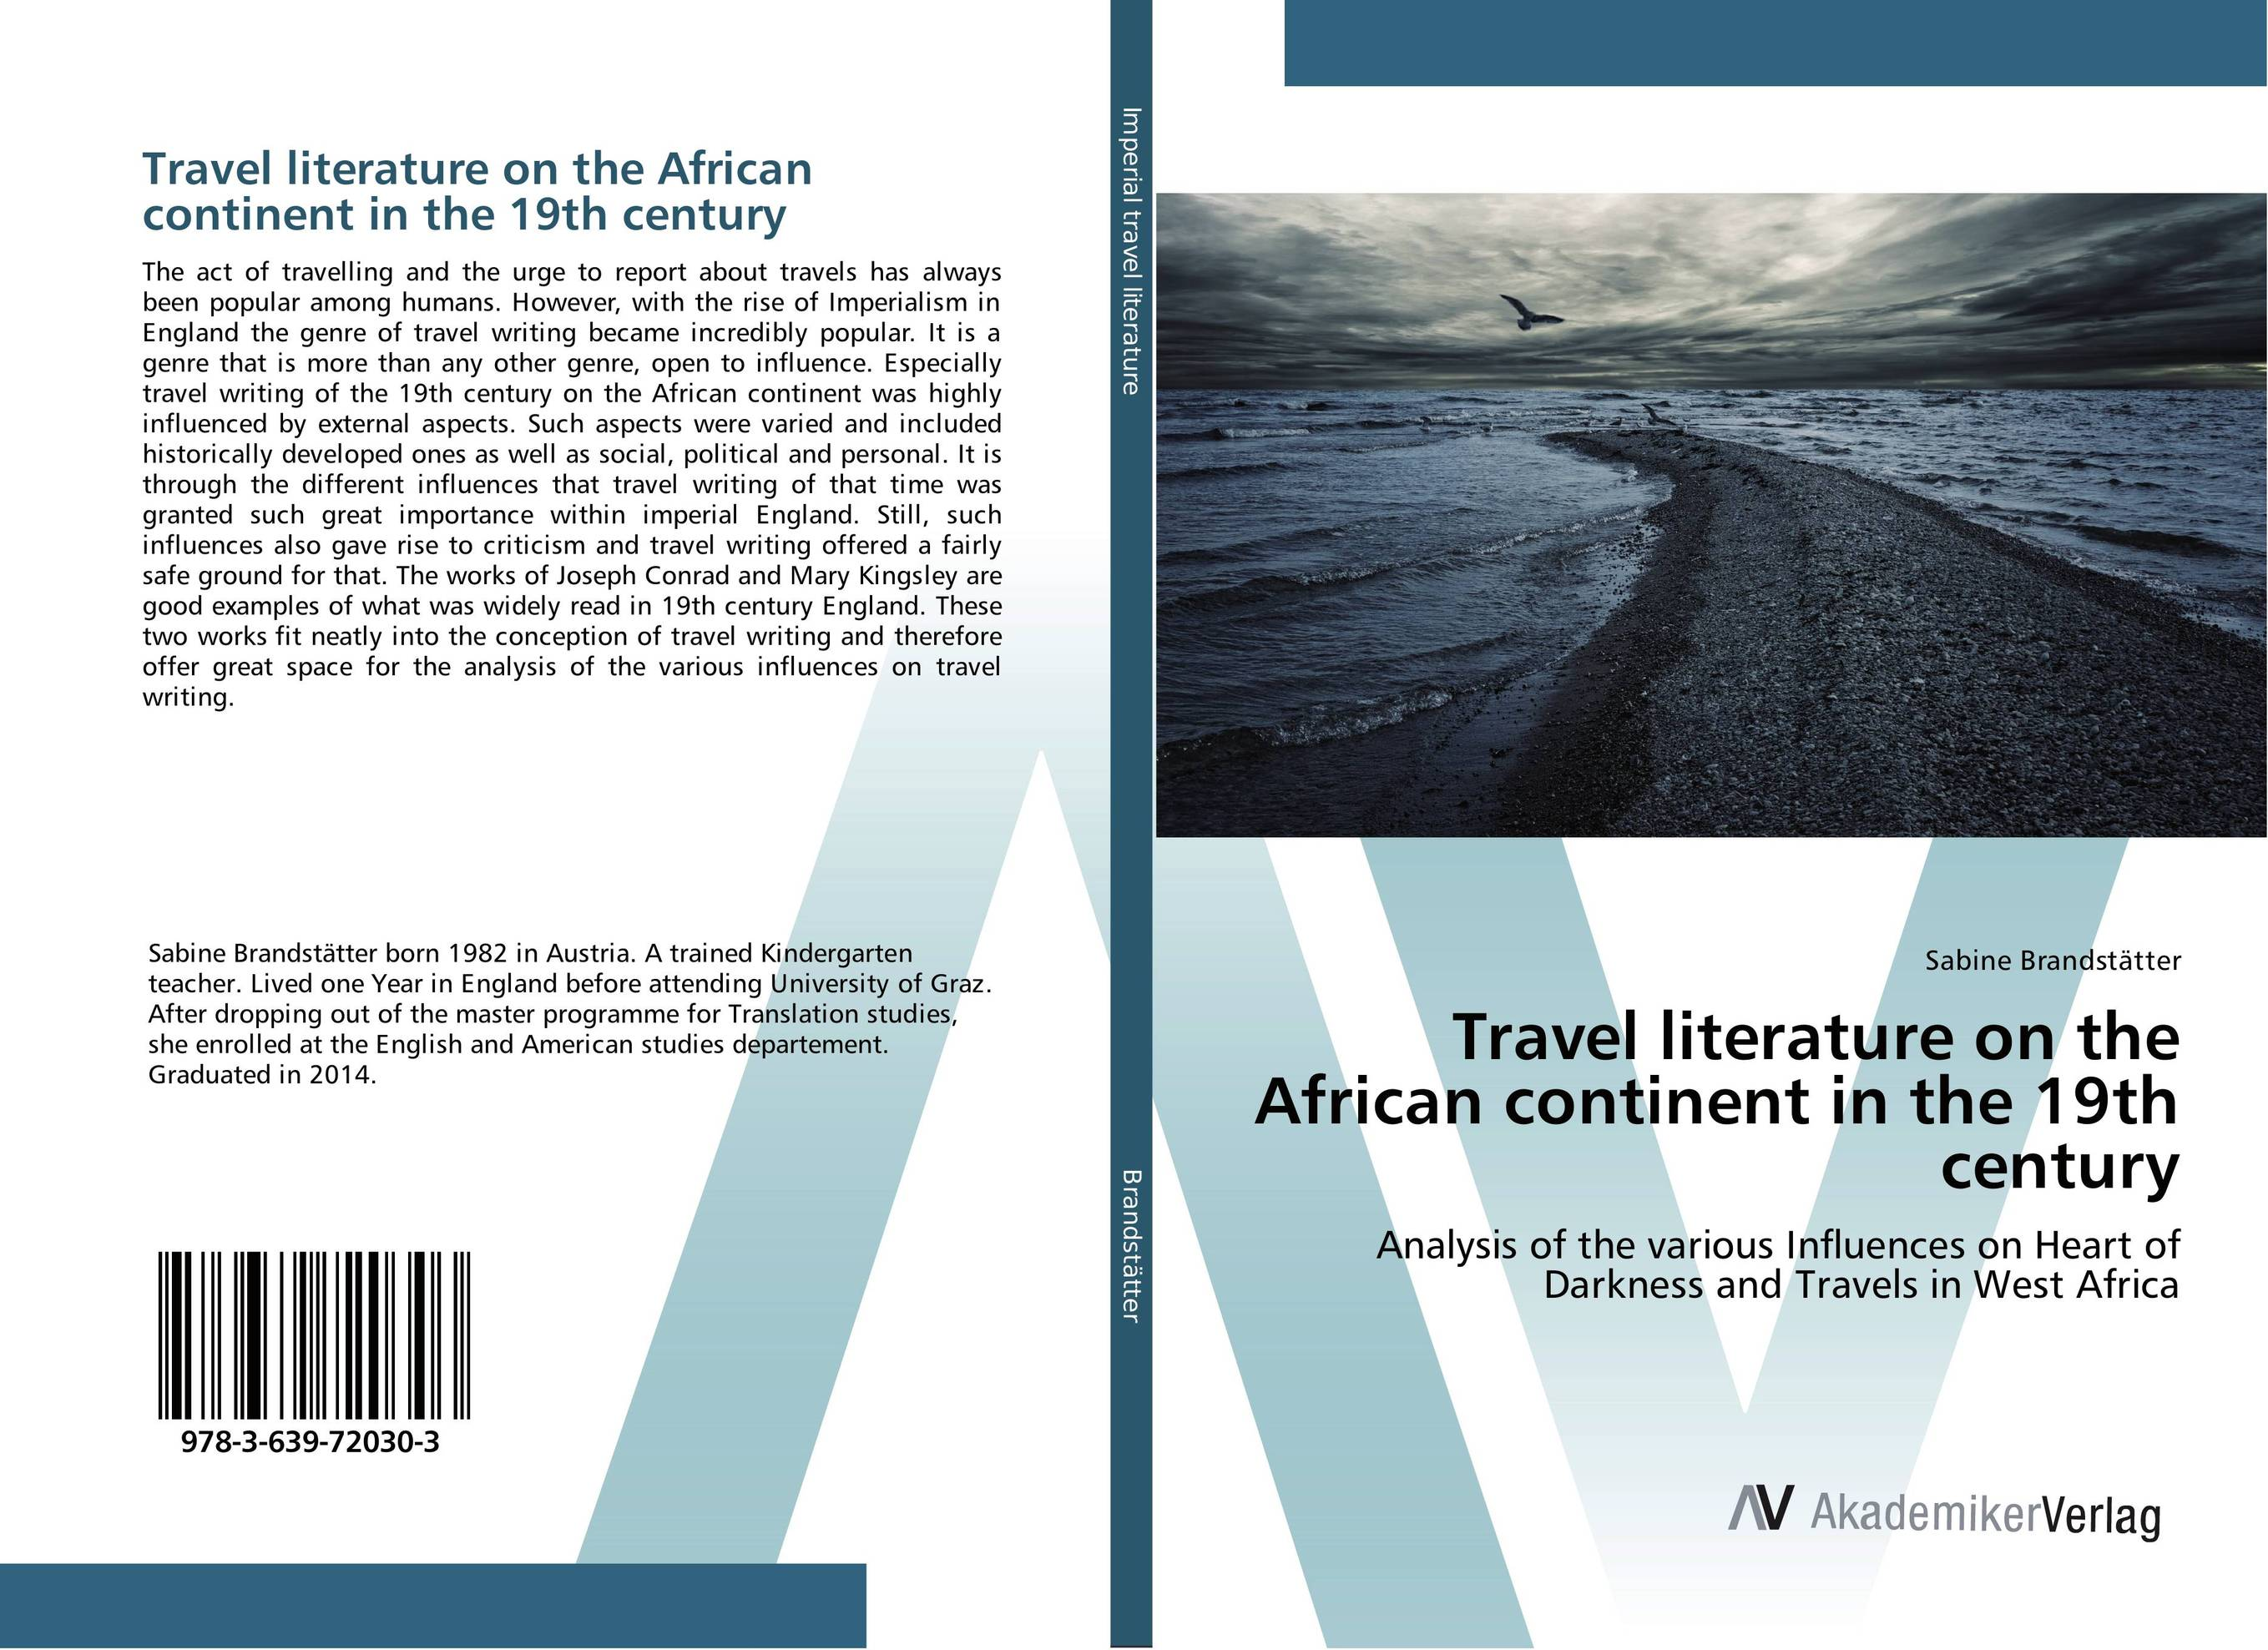 Travel literature on the African continent in the 19th century new england textiles in the nineteenth century – profits